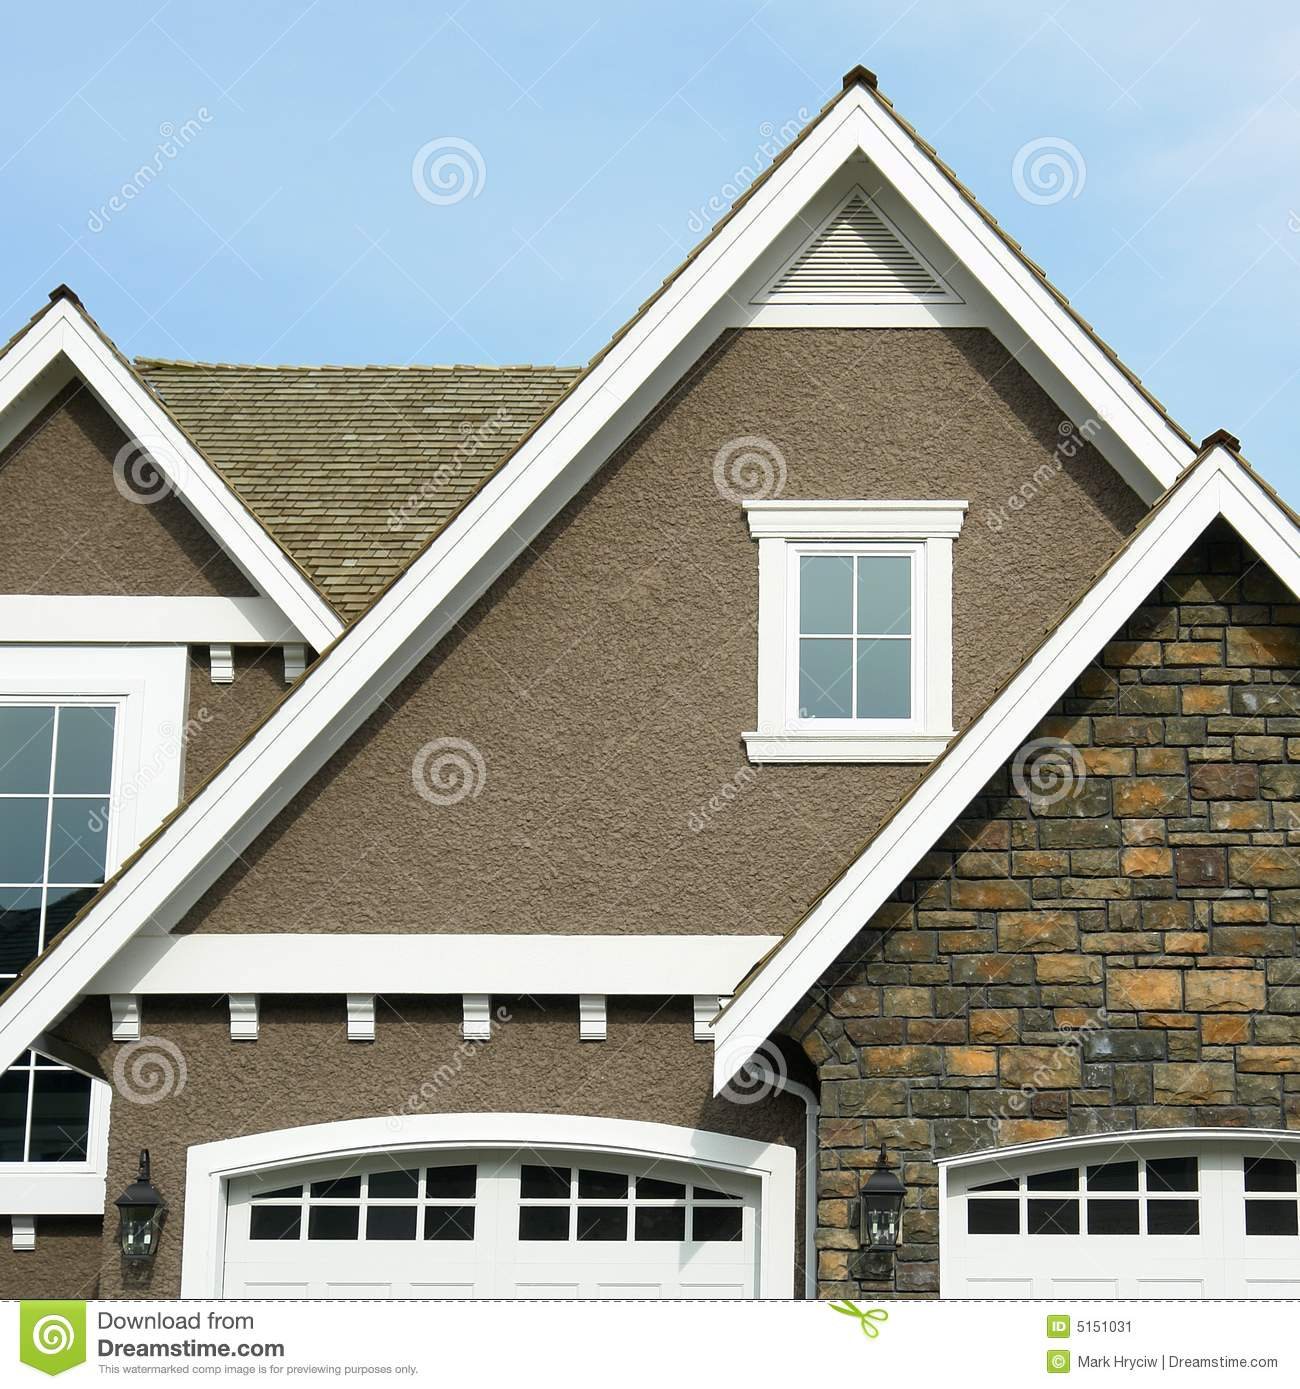 Stock Image Home Exterior House Roof Peak Image5151031 on Stucco Home Plans And Designs